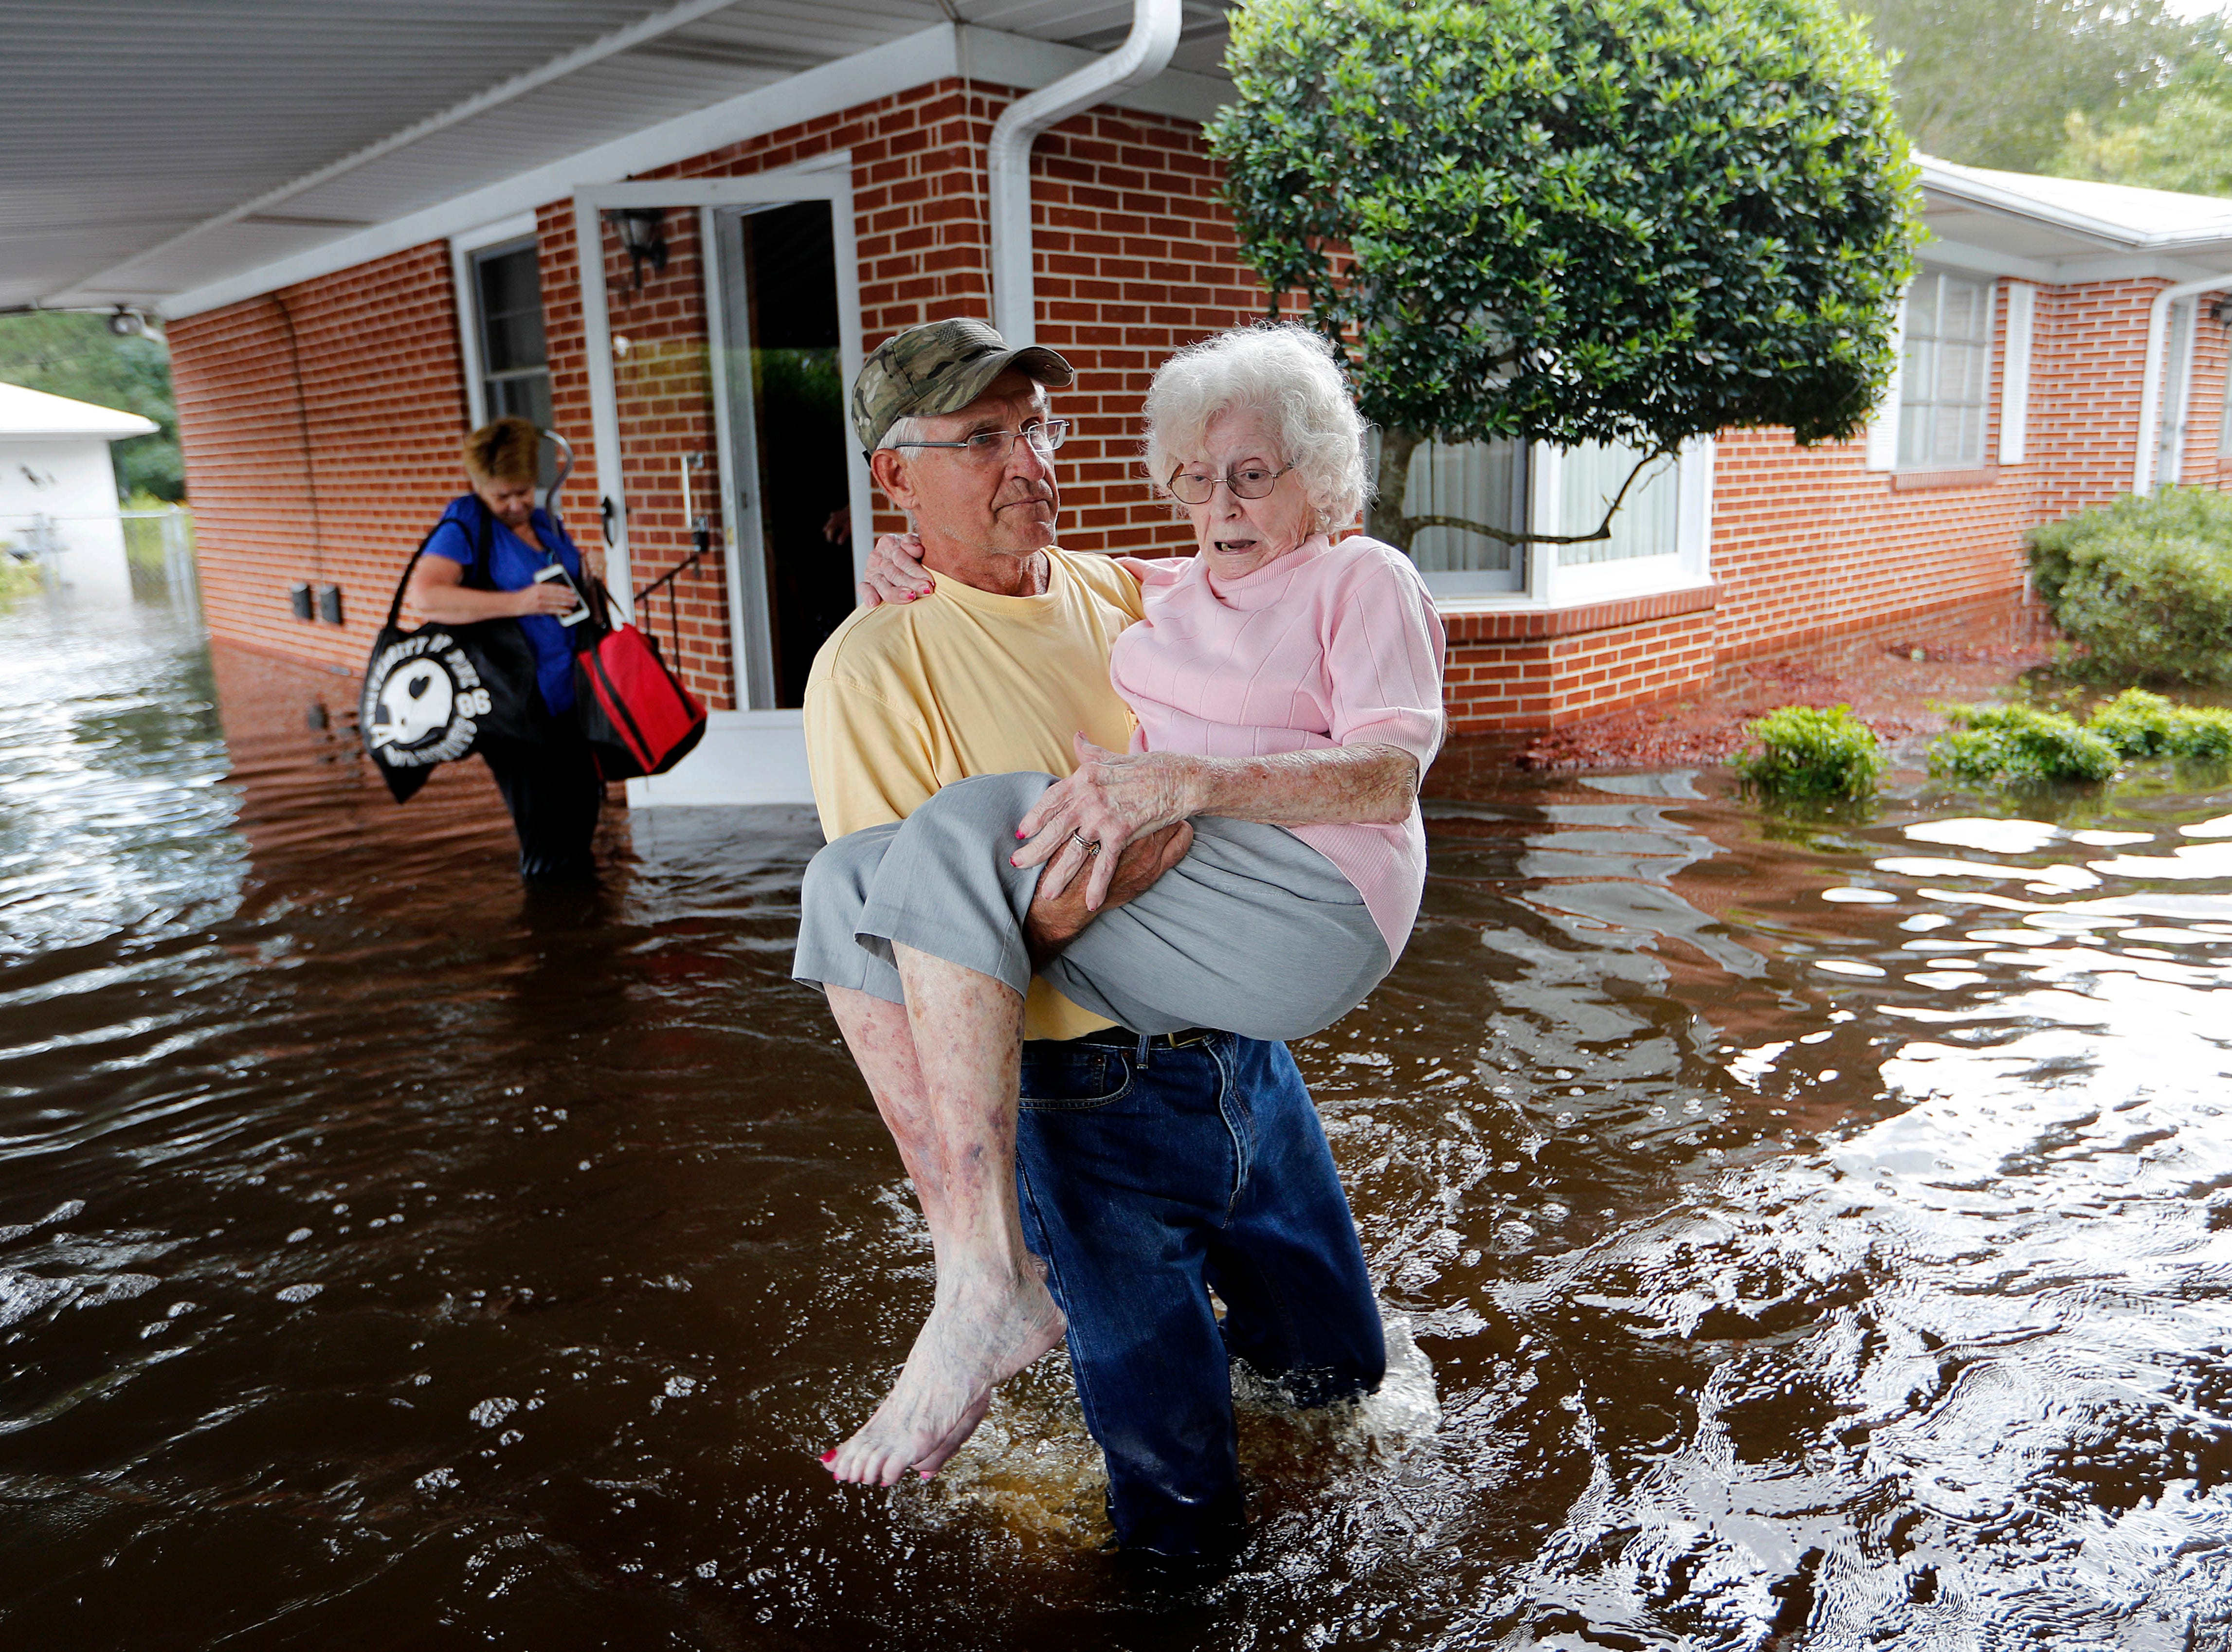 Bob Richling carries Iris Darden, 84, out of her flooded home as her daughter-in-law, Pam Darden, gathers her belongings in the aftermath of Hurricane Florence in Spring Lake, N.C.